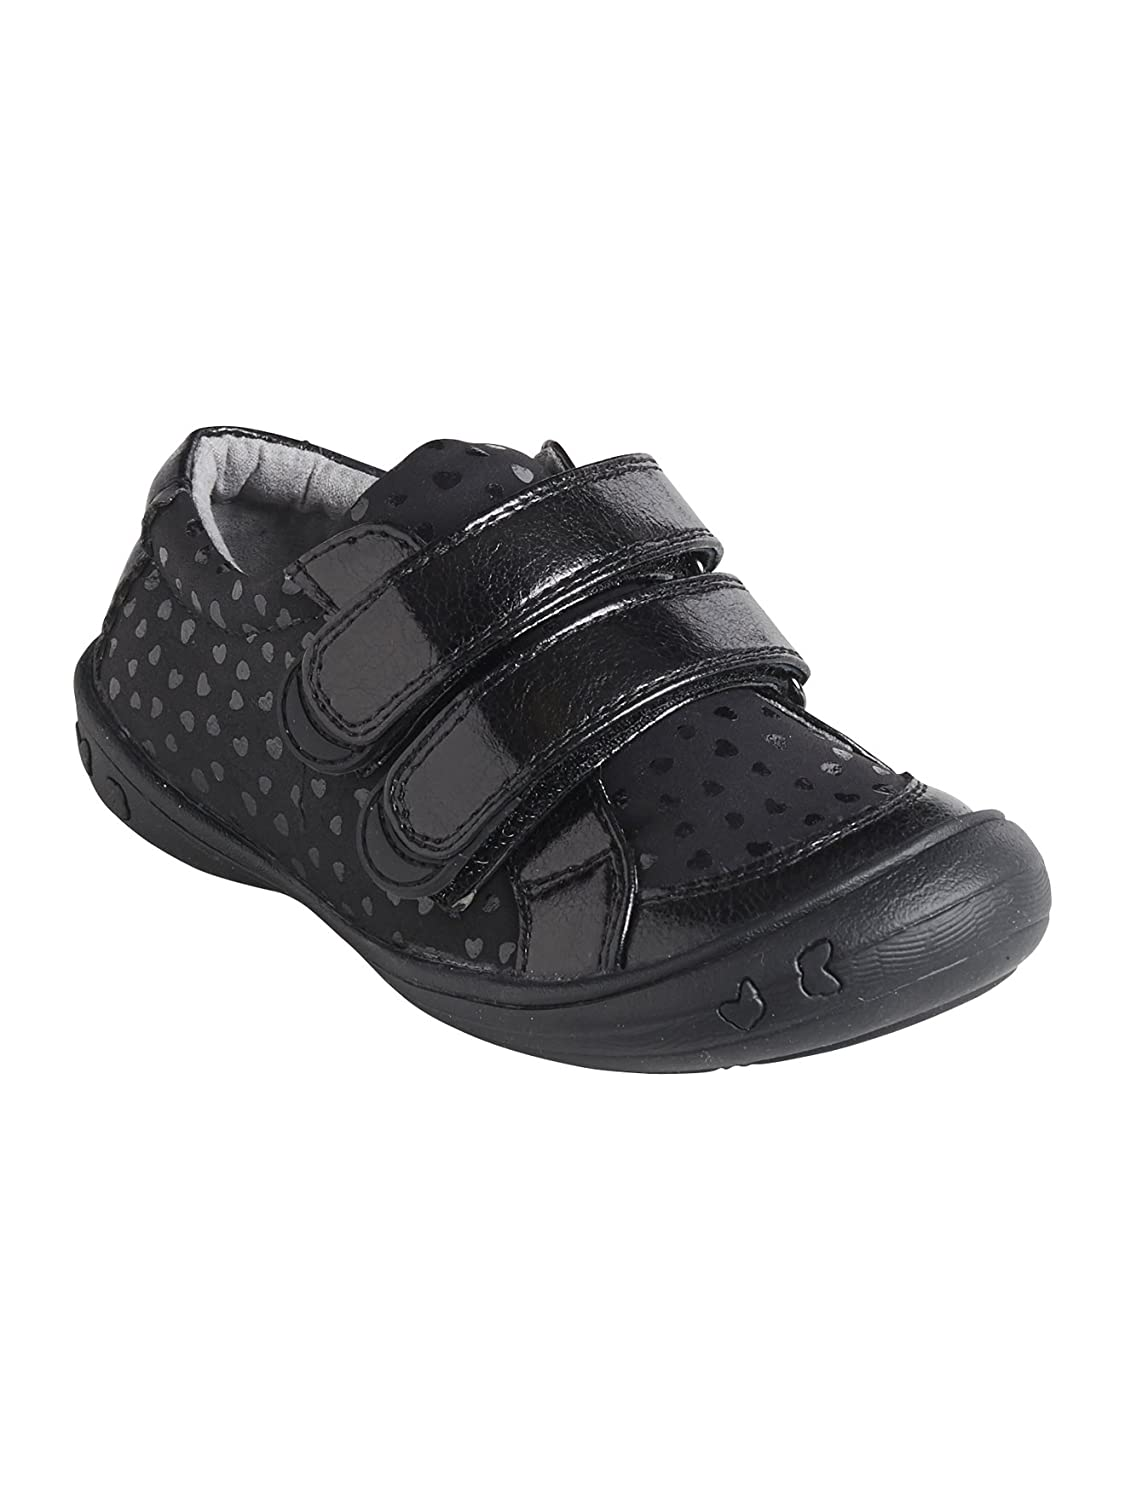 Vertbaudet Chaussures Basses Fille Collection Maternelle